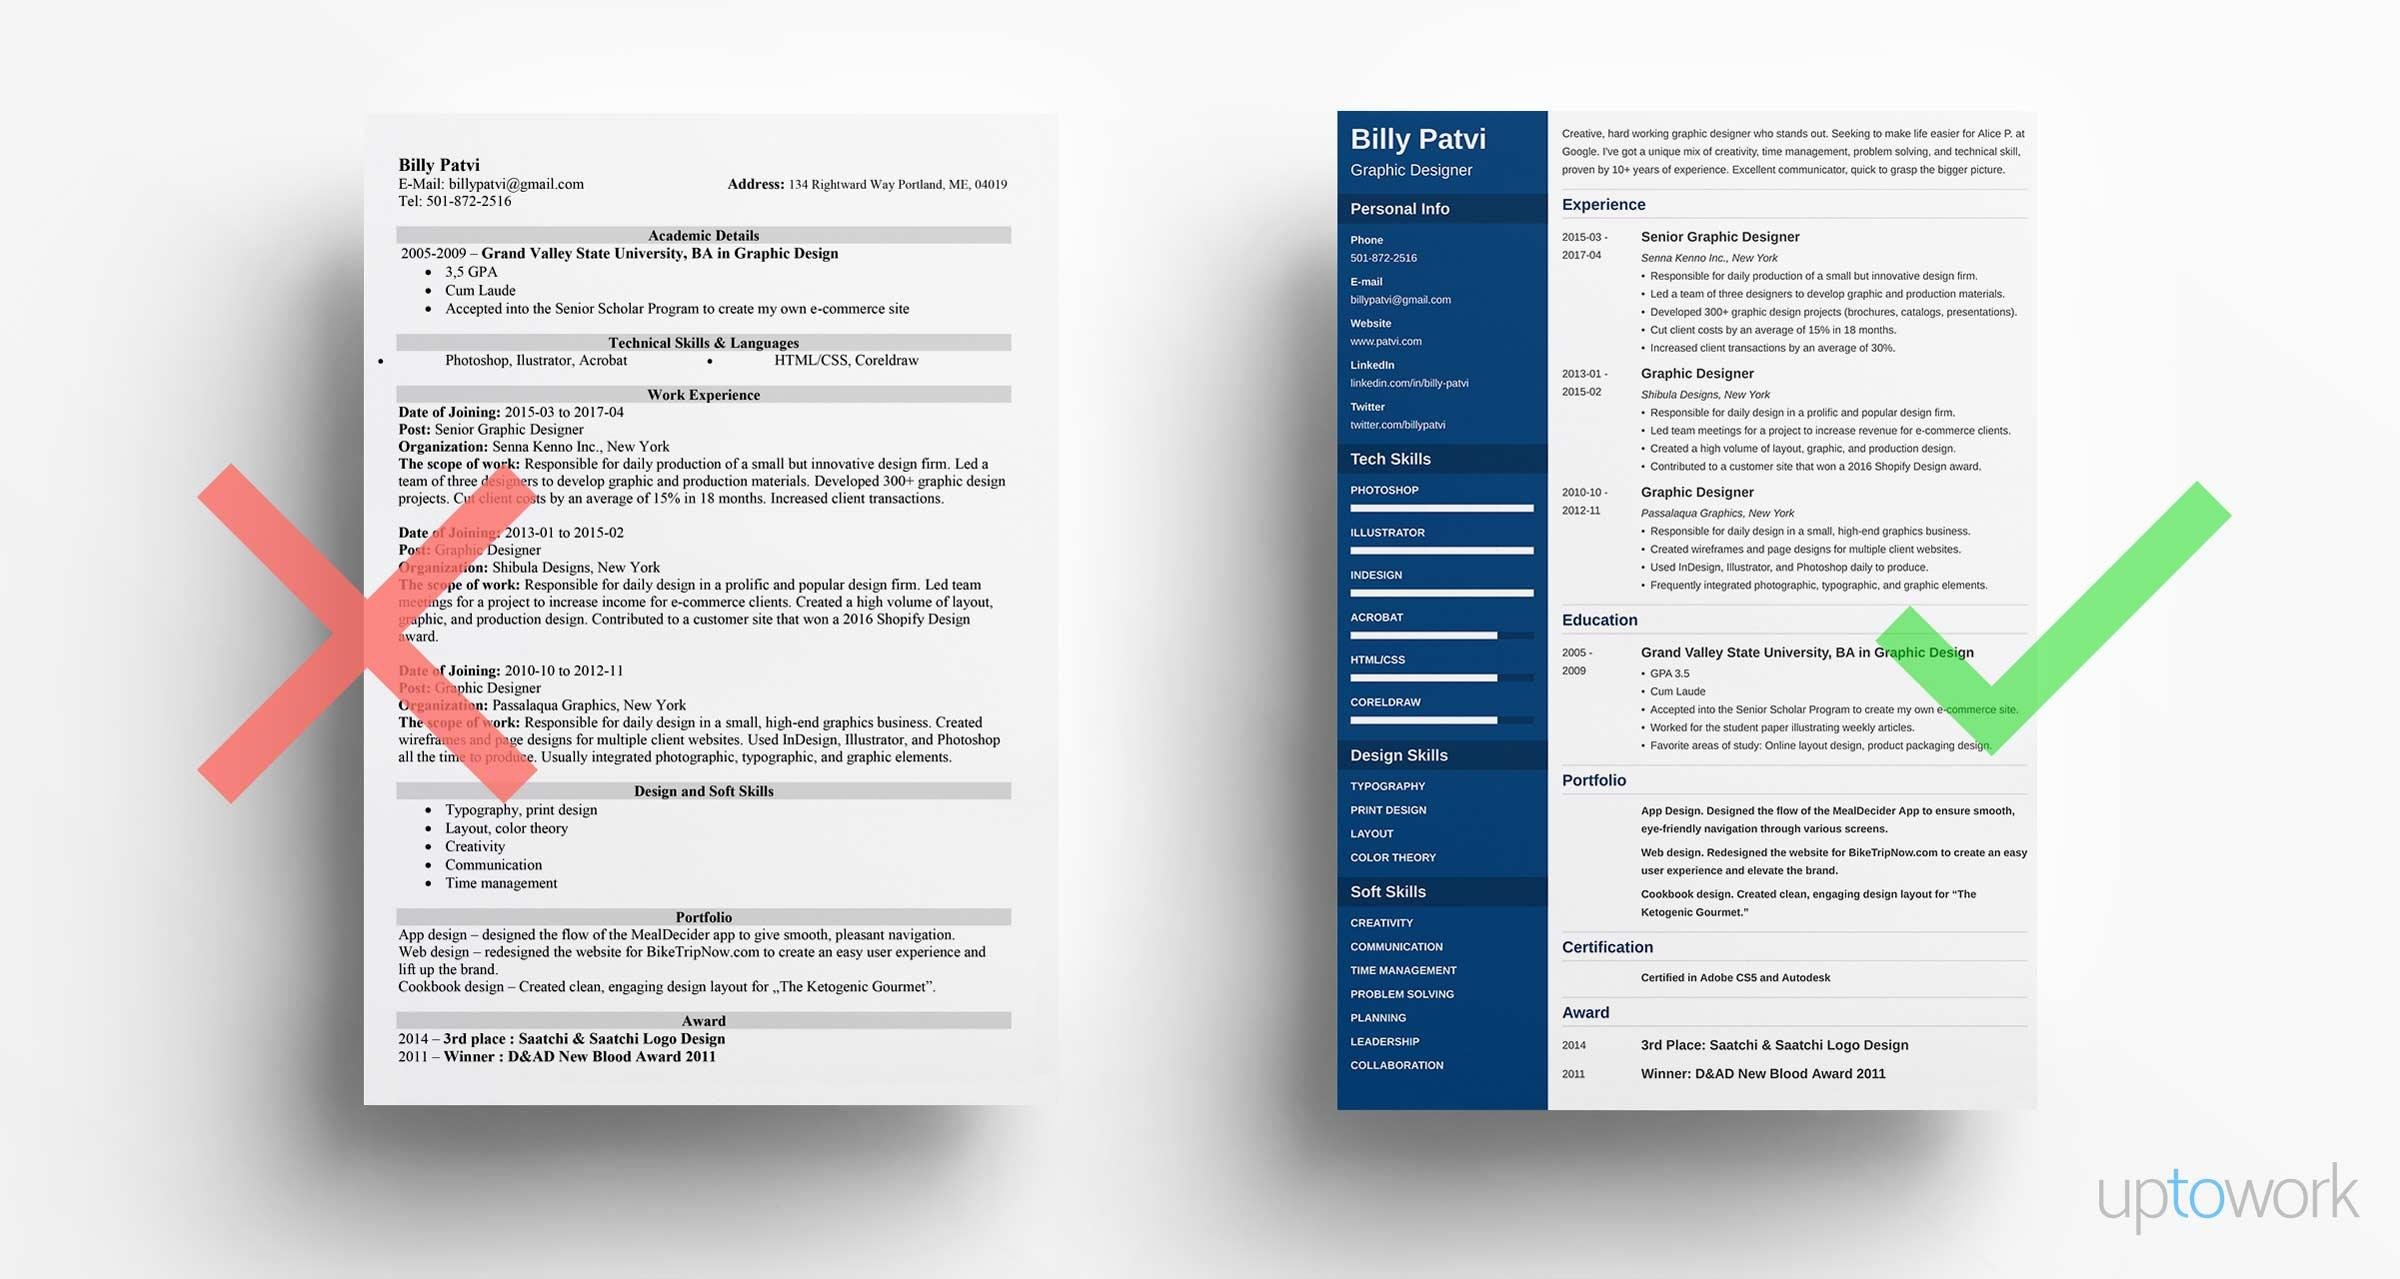 graphic designer resume examples and design tips for visual sample samples builder recent Resume Visual Designer Resume Sample